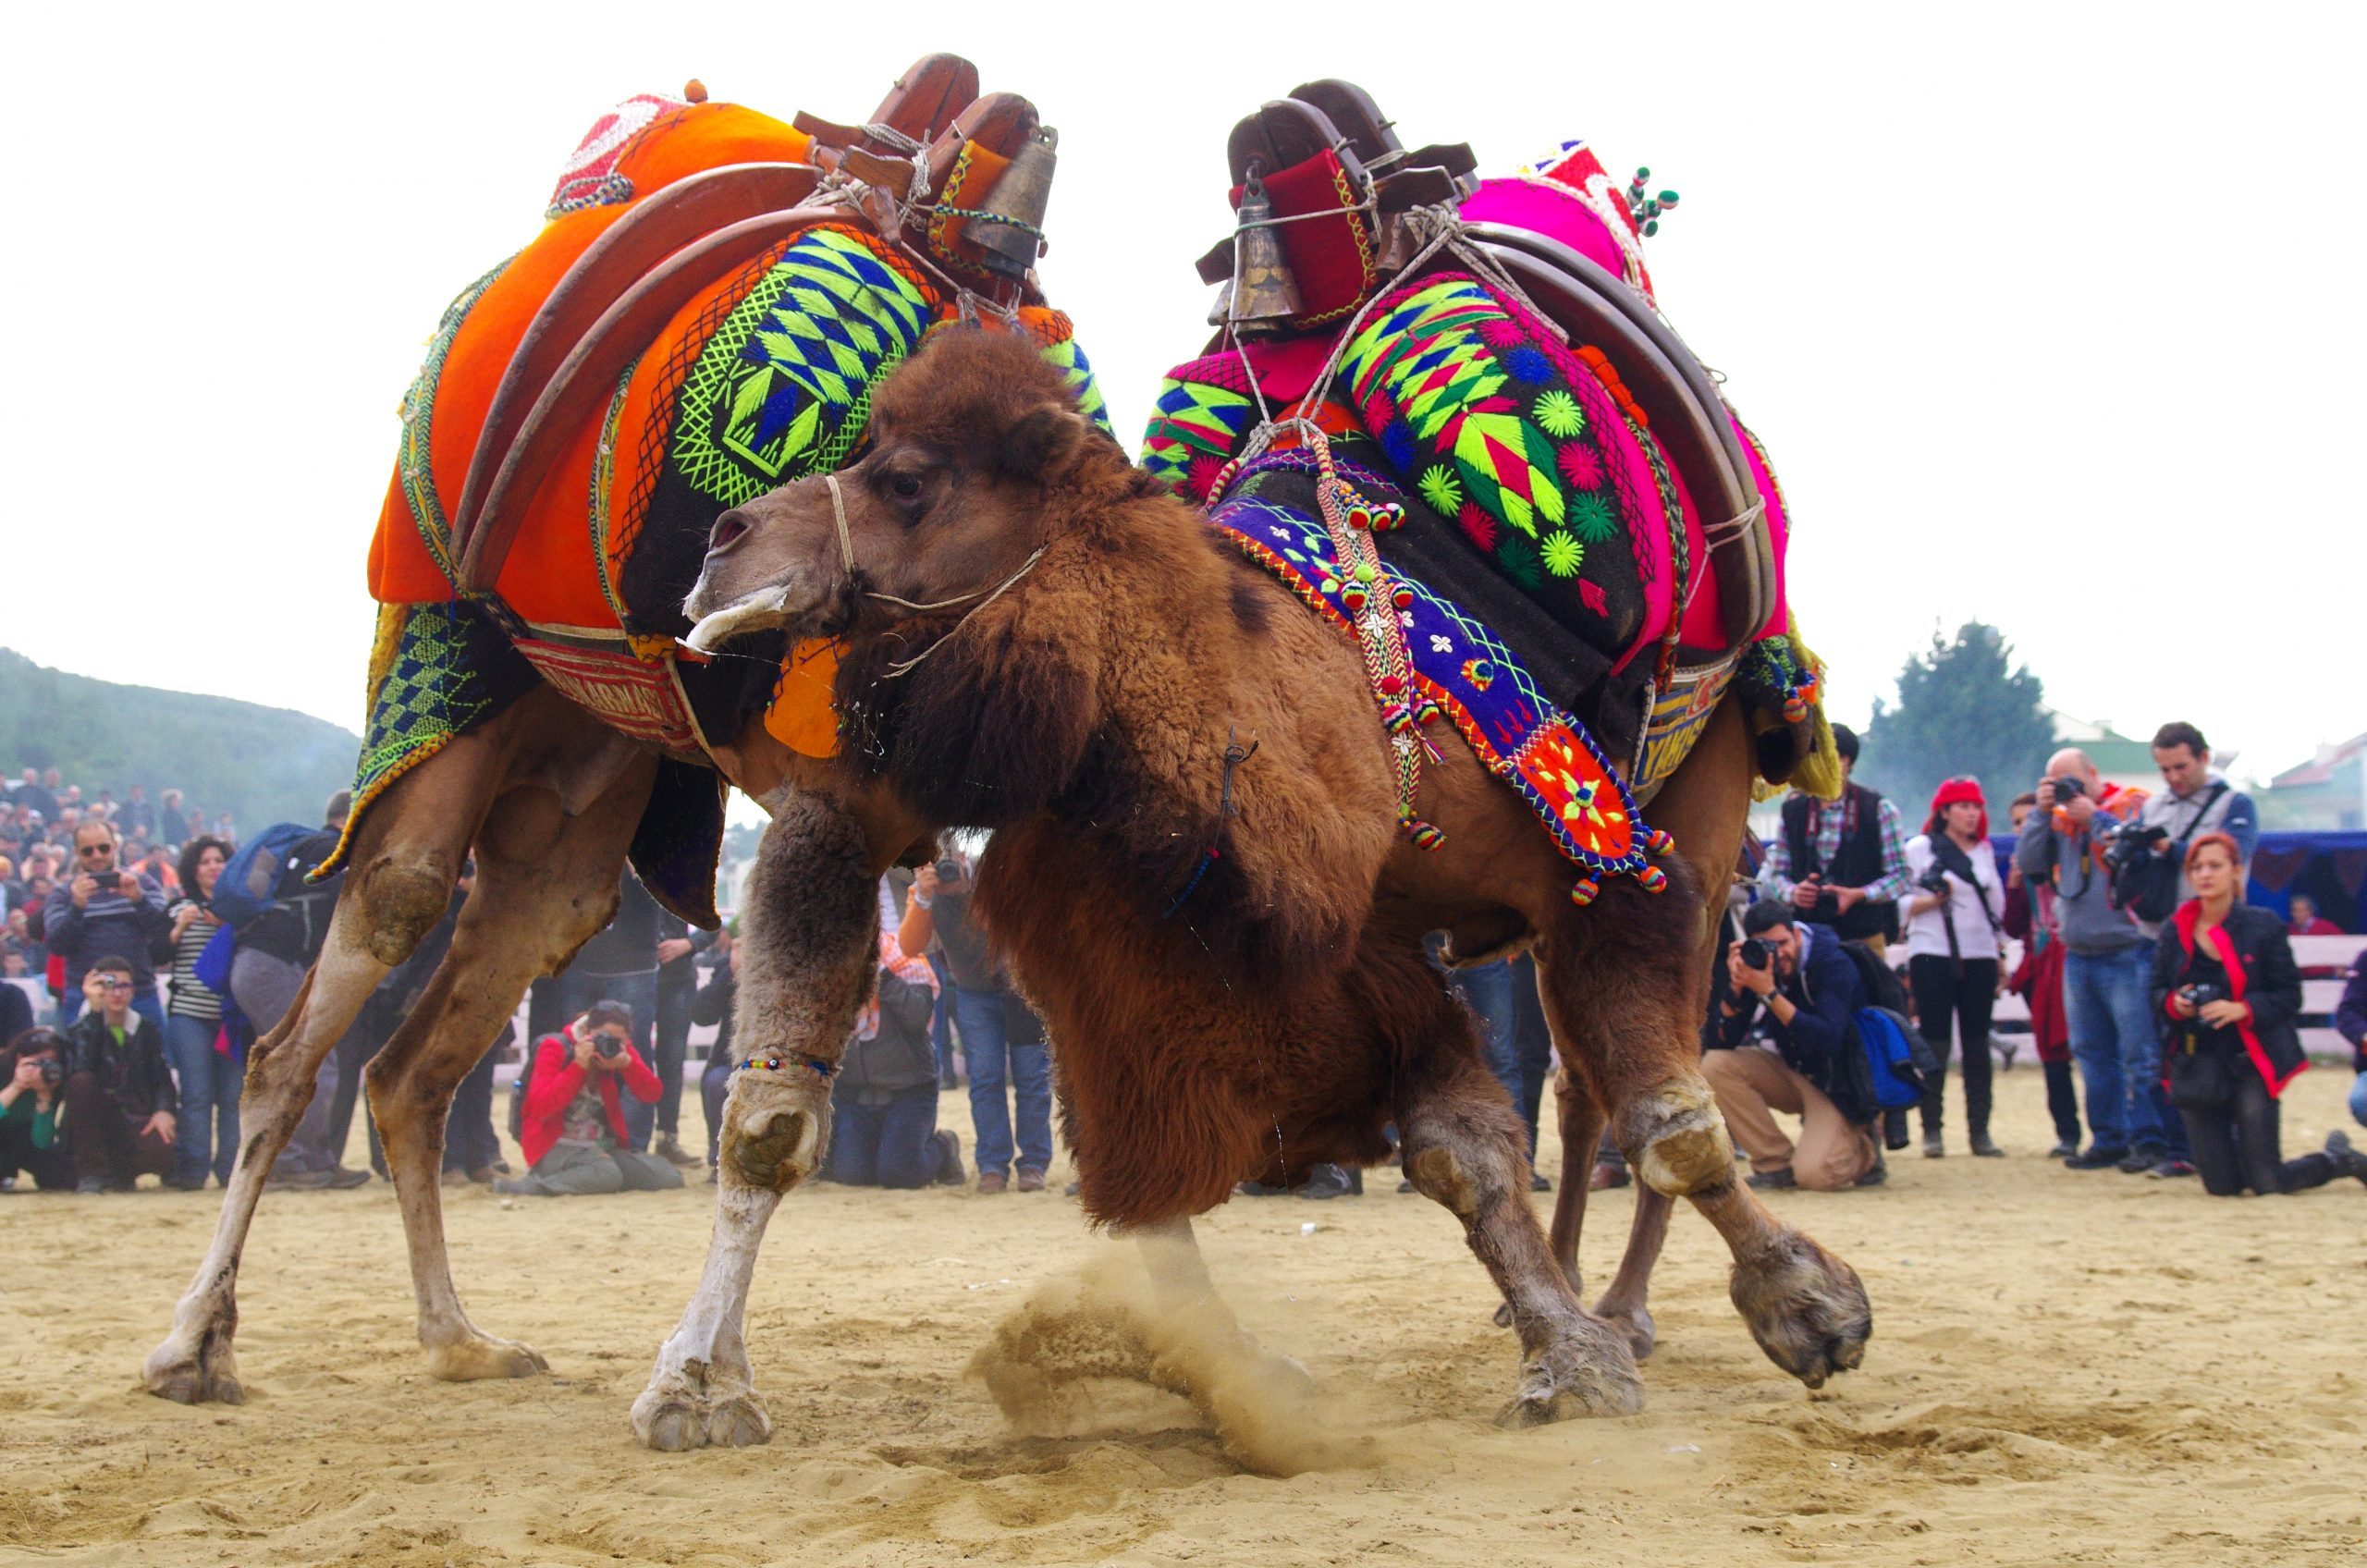 Camels are Made to Dangerously Wrestle in Turkey While Spectators Cheer and  Eat Camel Meat - One Green Planet